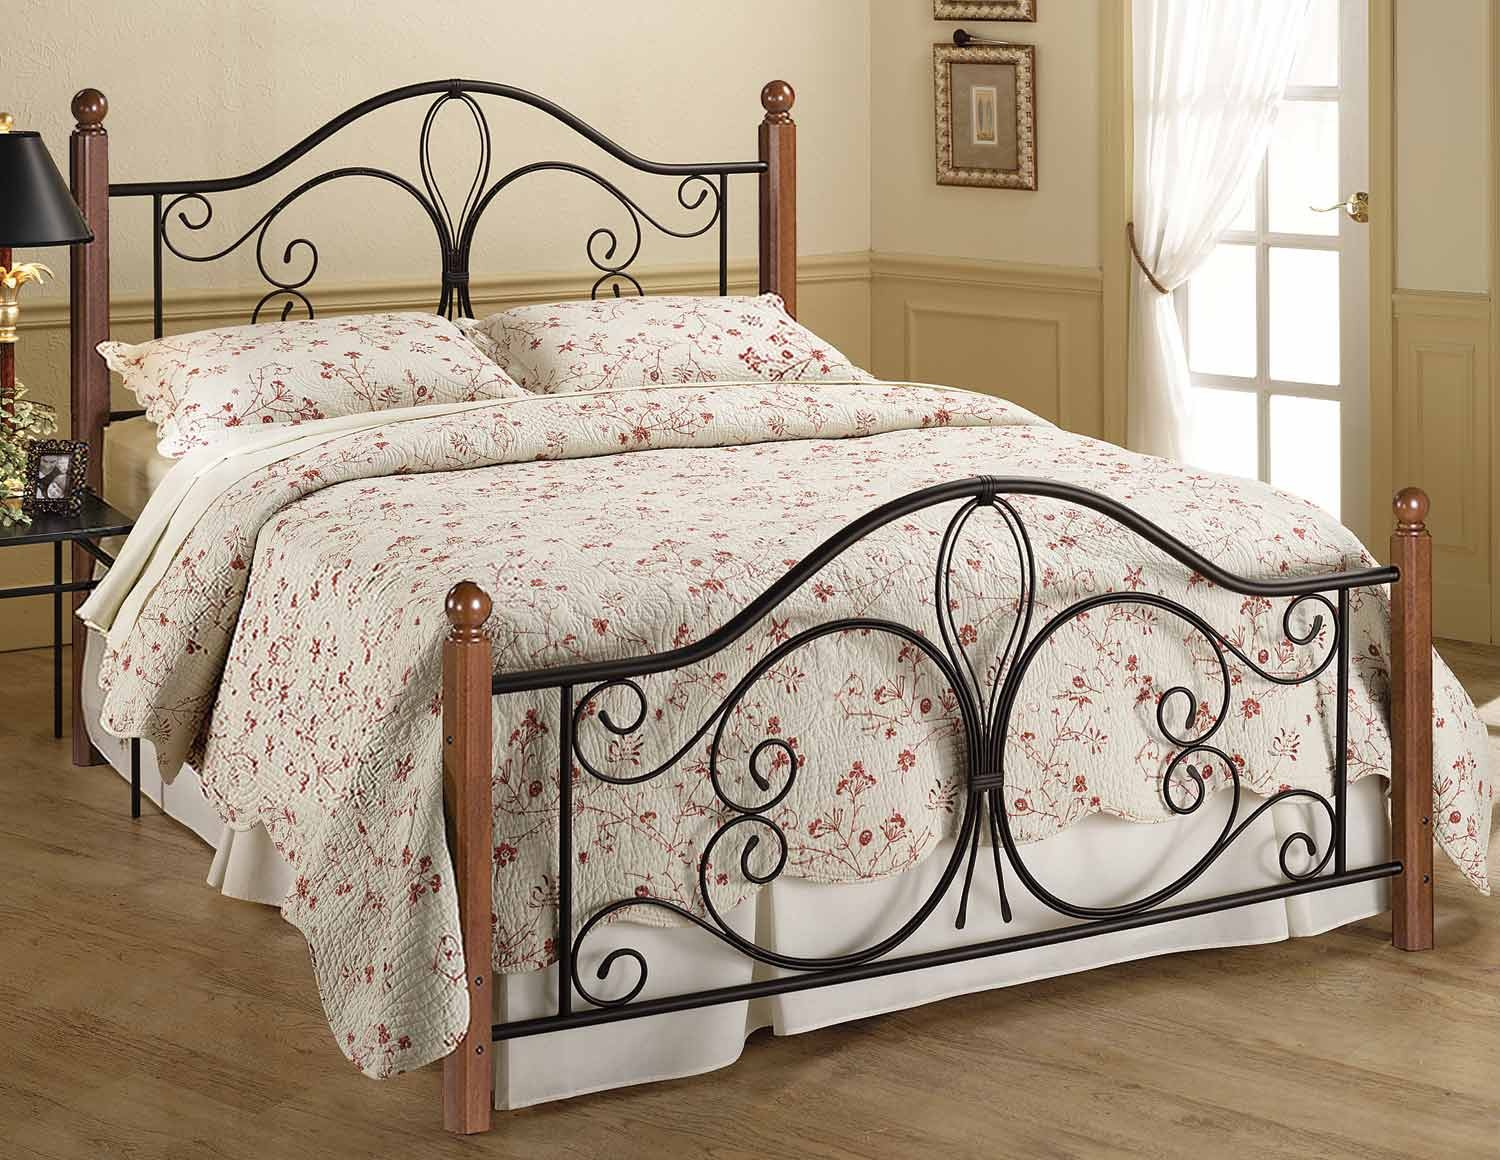 Hillsdale Milwaukee Wood Post Bed - Black/Cherry